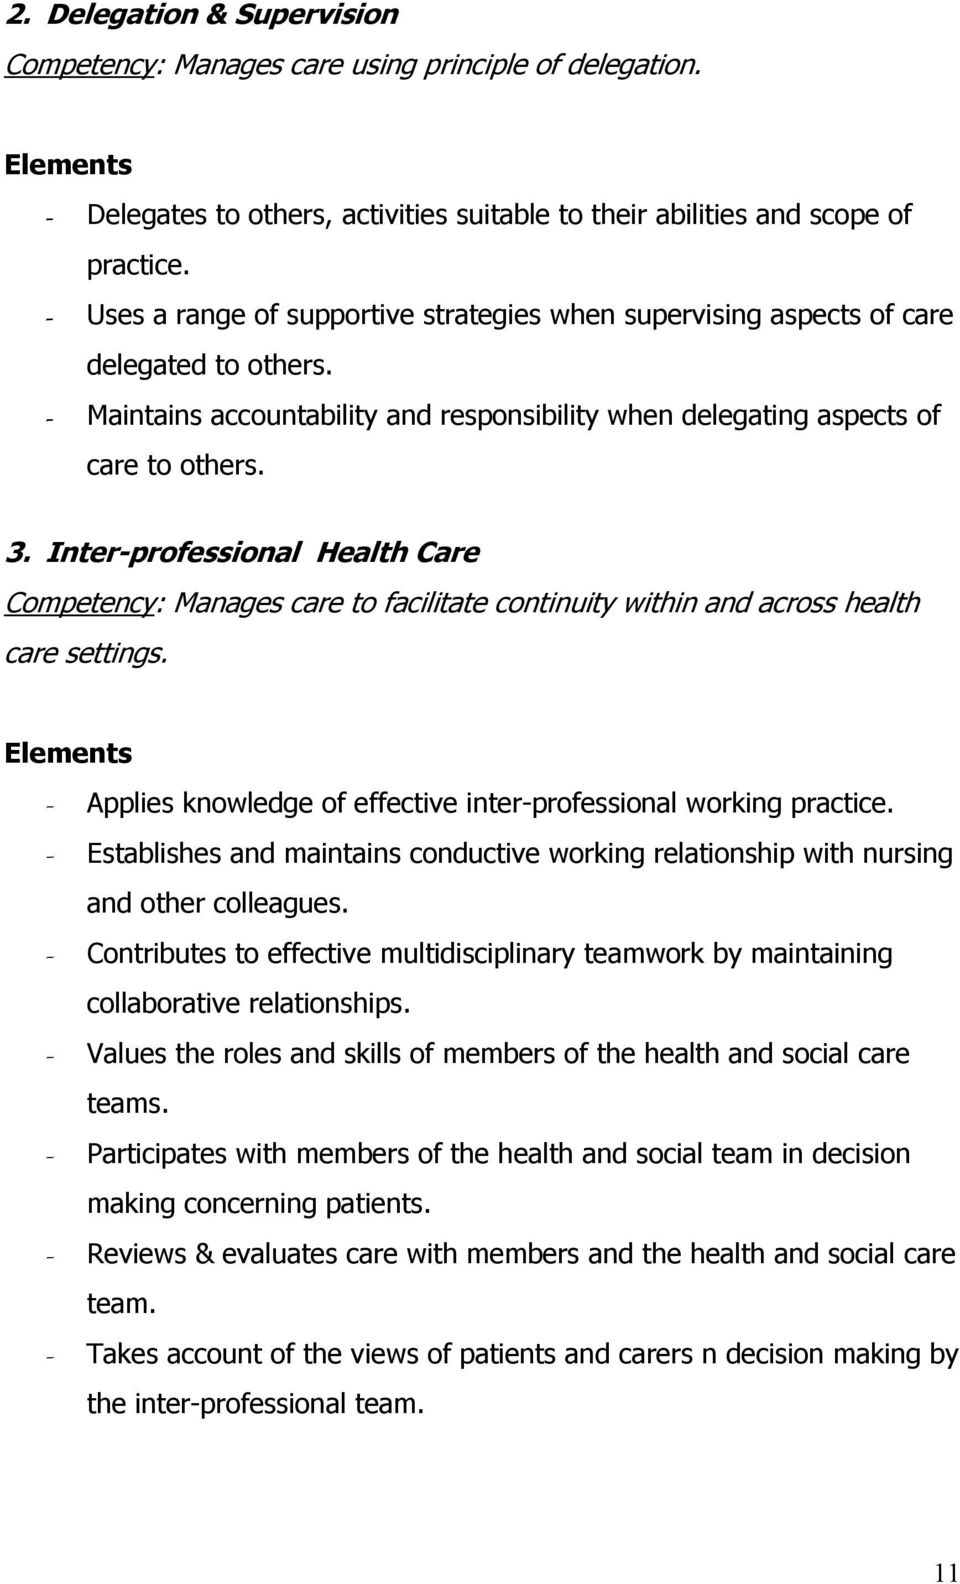 Inter-professional Health Care Competency: Manages care to facilitate continuity within and across health care settings. Applies knowledge of effective inter-professional working practice.